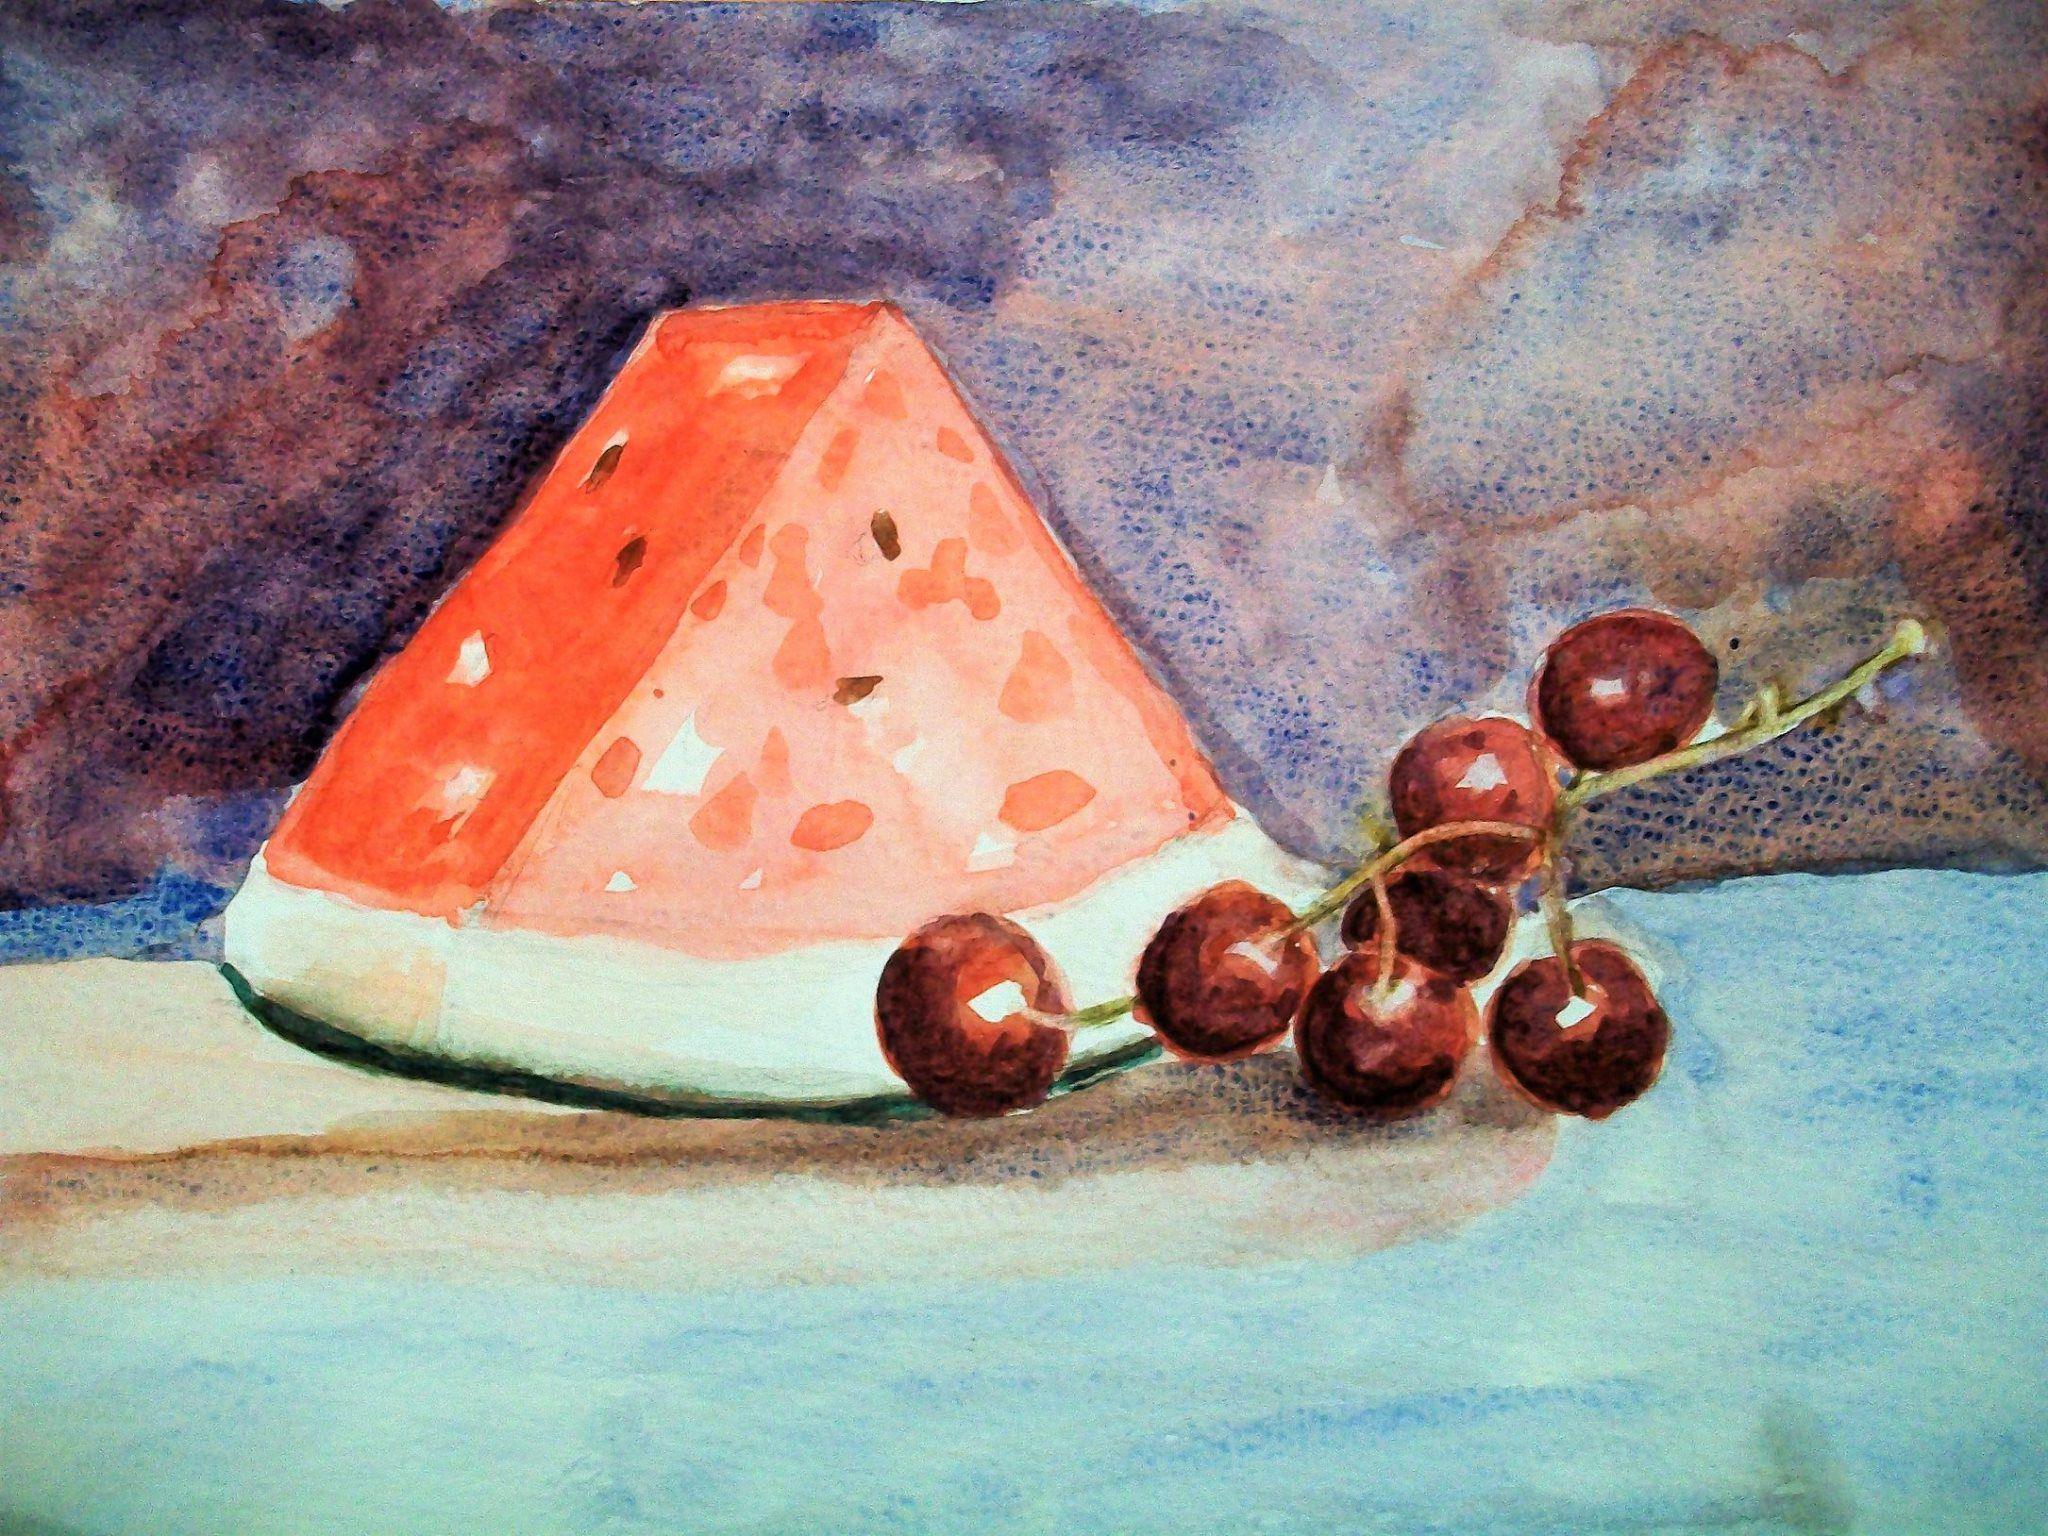 still grapes kitchen life decoration gift watermelon fruits wall watercolor summer painting art